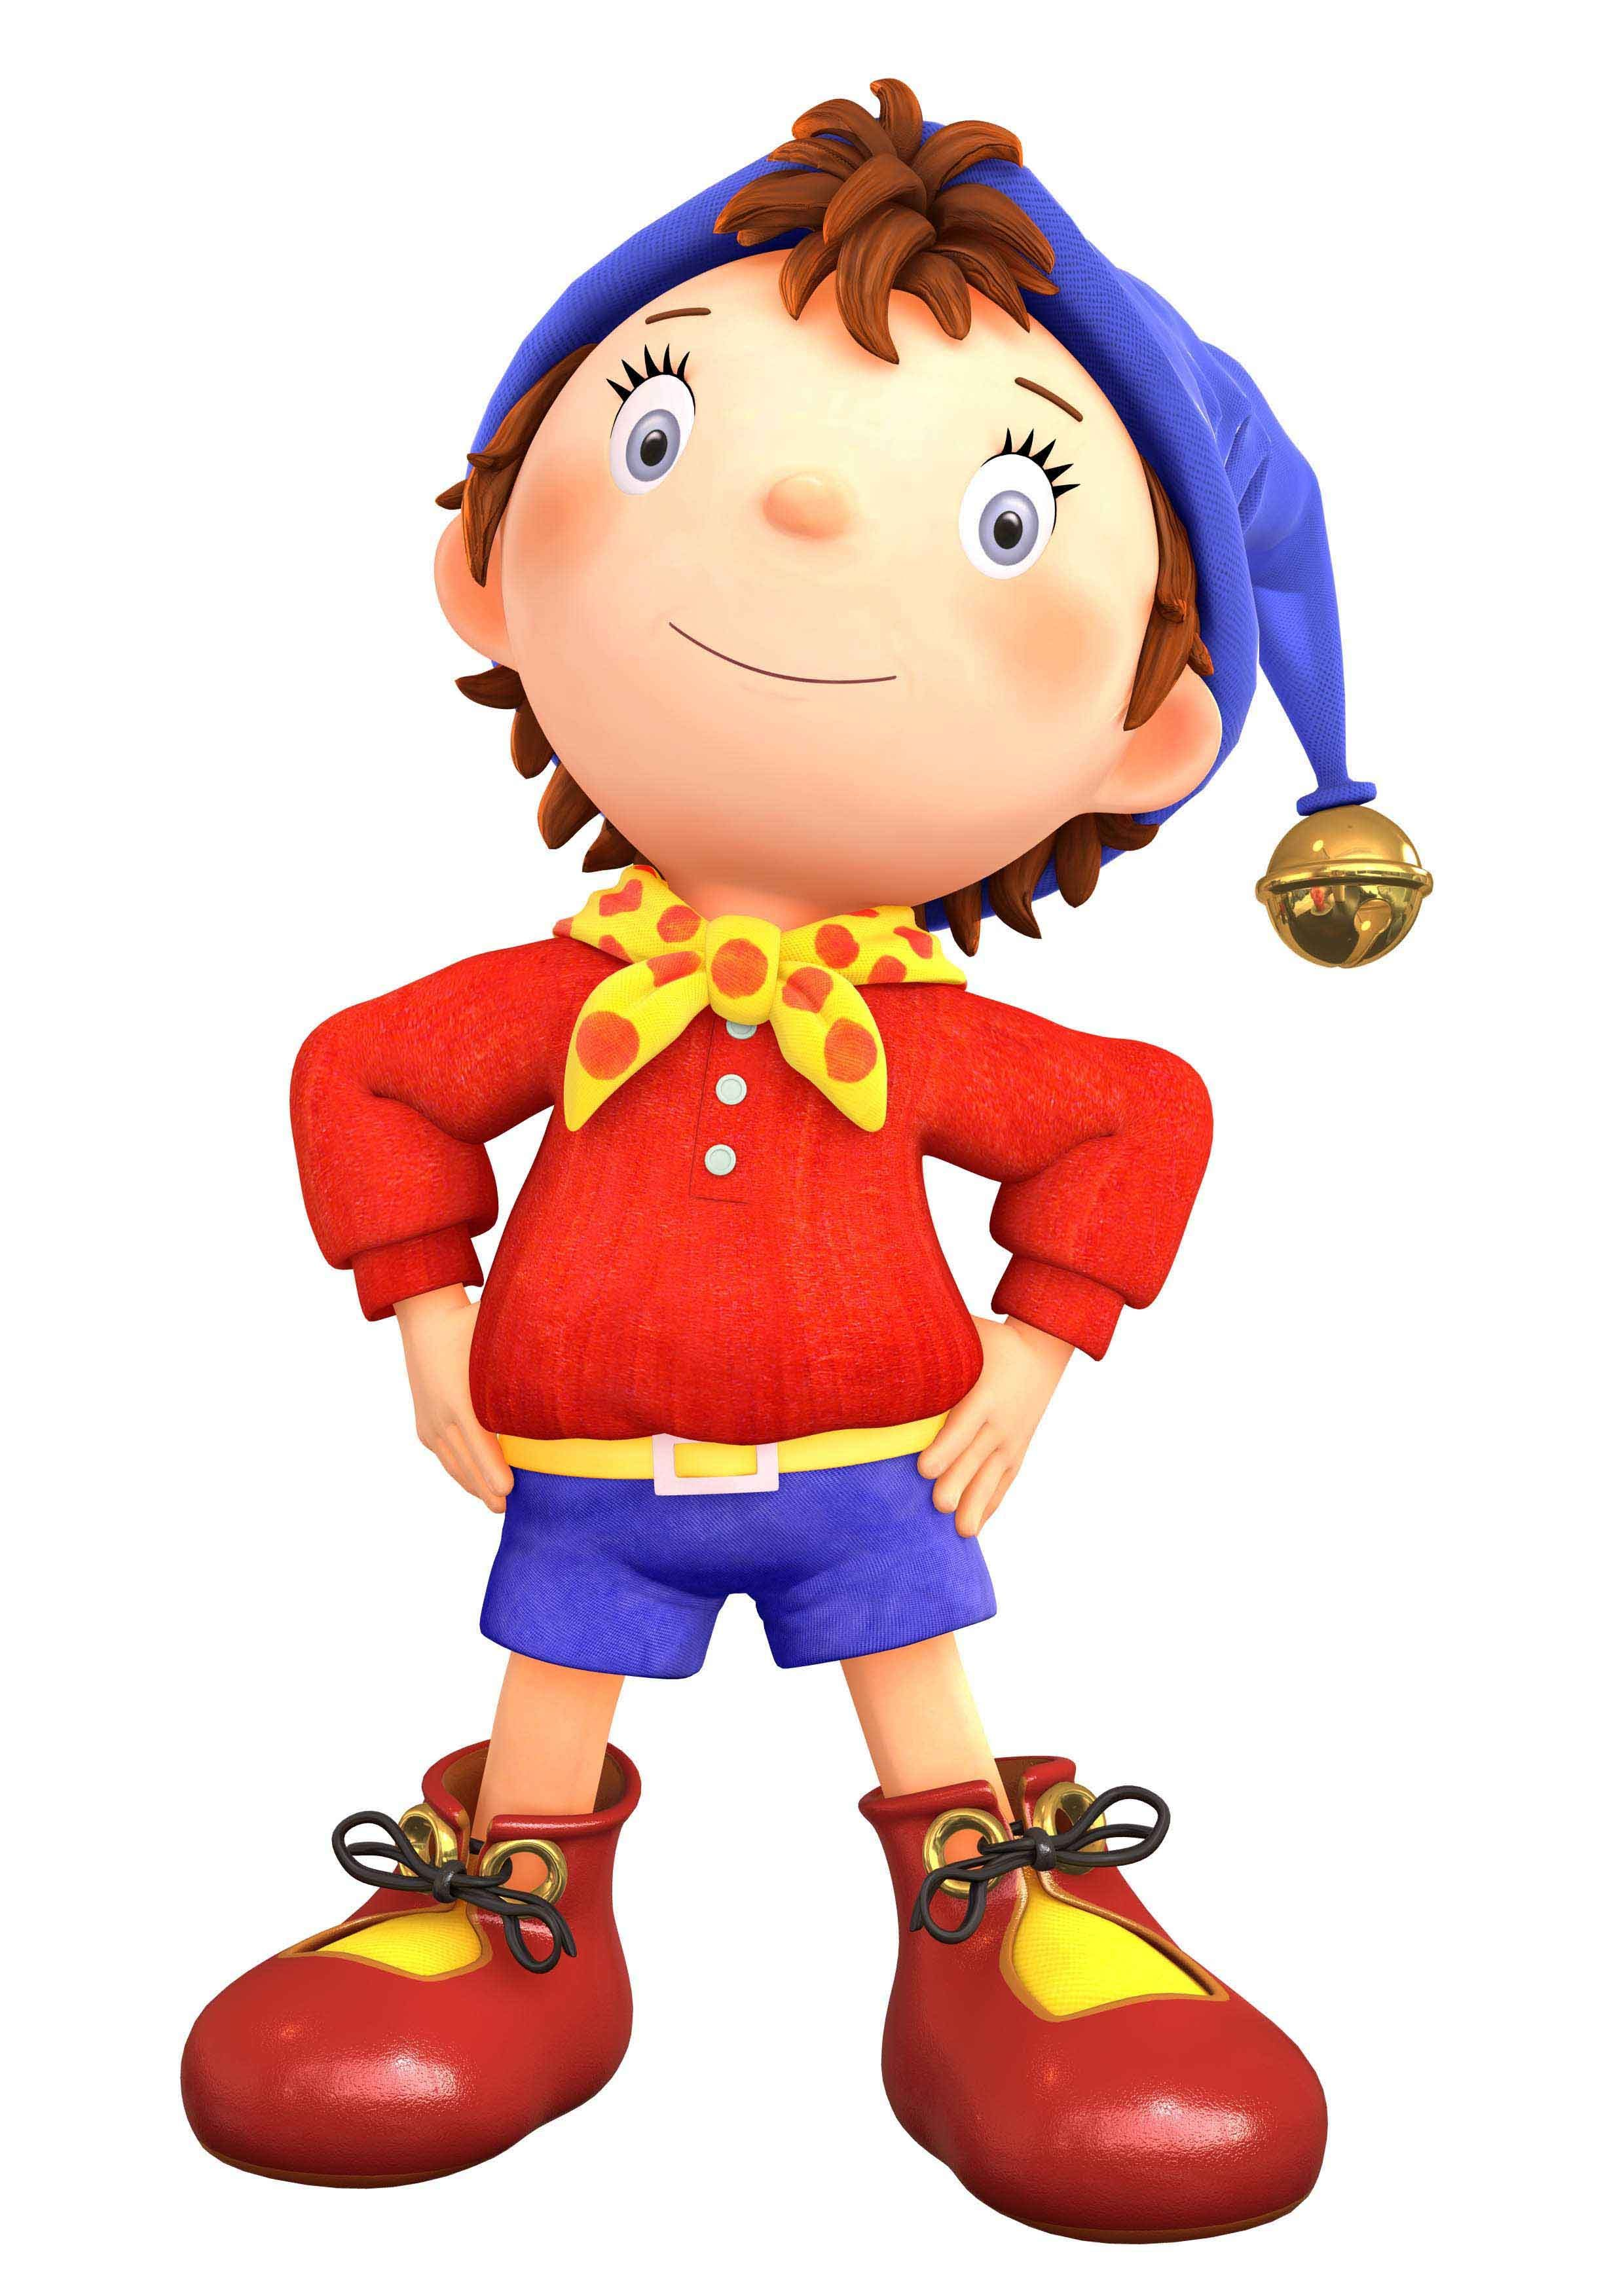 make way for noddy noddy he toots his horn to sayyyy make way